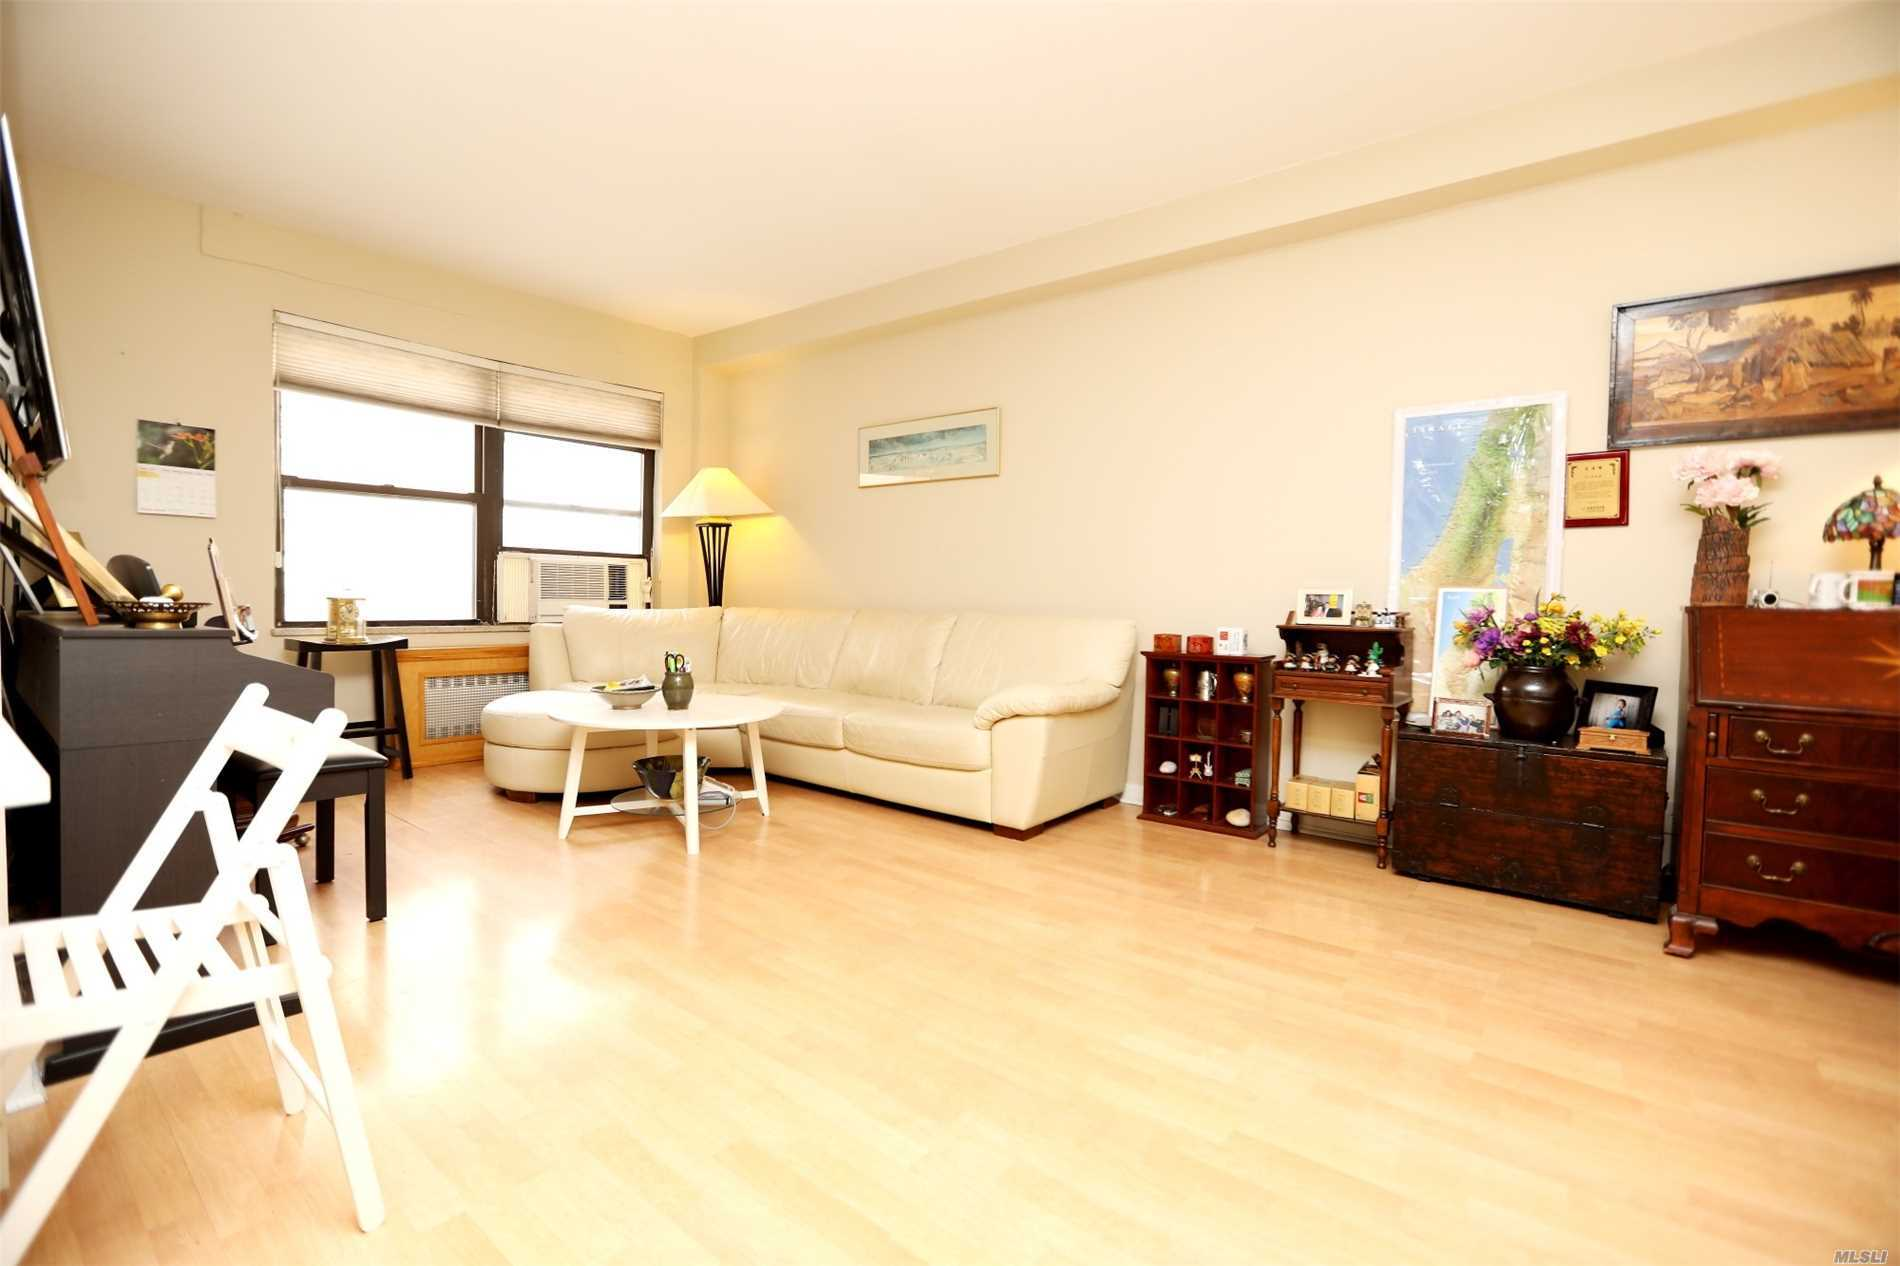 Prime Location! 3 Bedroom, 1.5 Bath Duplex In Fireproof Building In Heart Of Rego Park, Renovated Eat-In Kitchen & Powder Room, Pet-Friendly! Close To Transportation: Express Bus, Lirr, 1 Block To M & R Train, Major Highways, Cafes, Boutiques, Nysc Sports Clubs & Services, Garage Available.